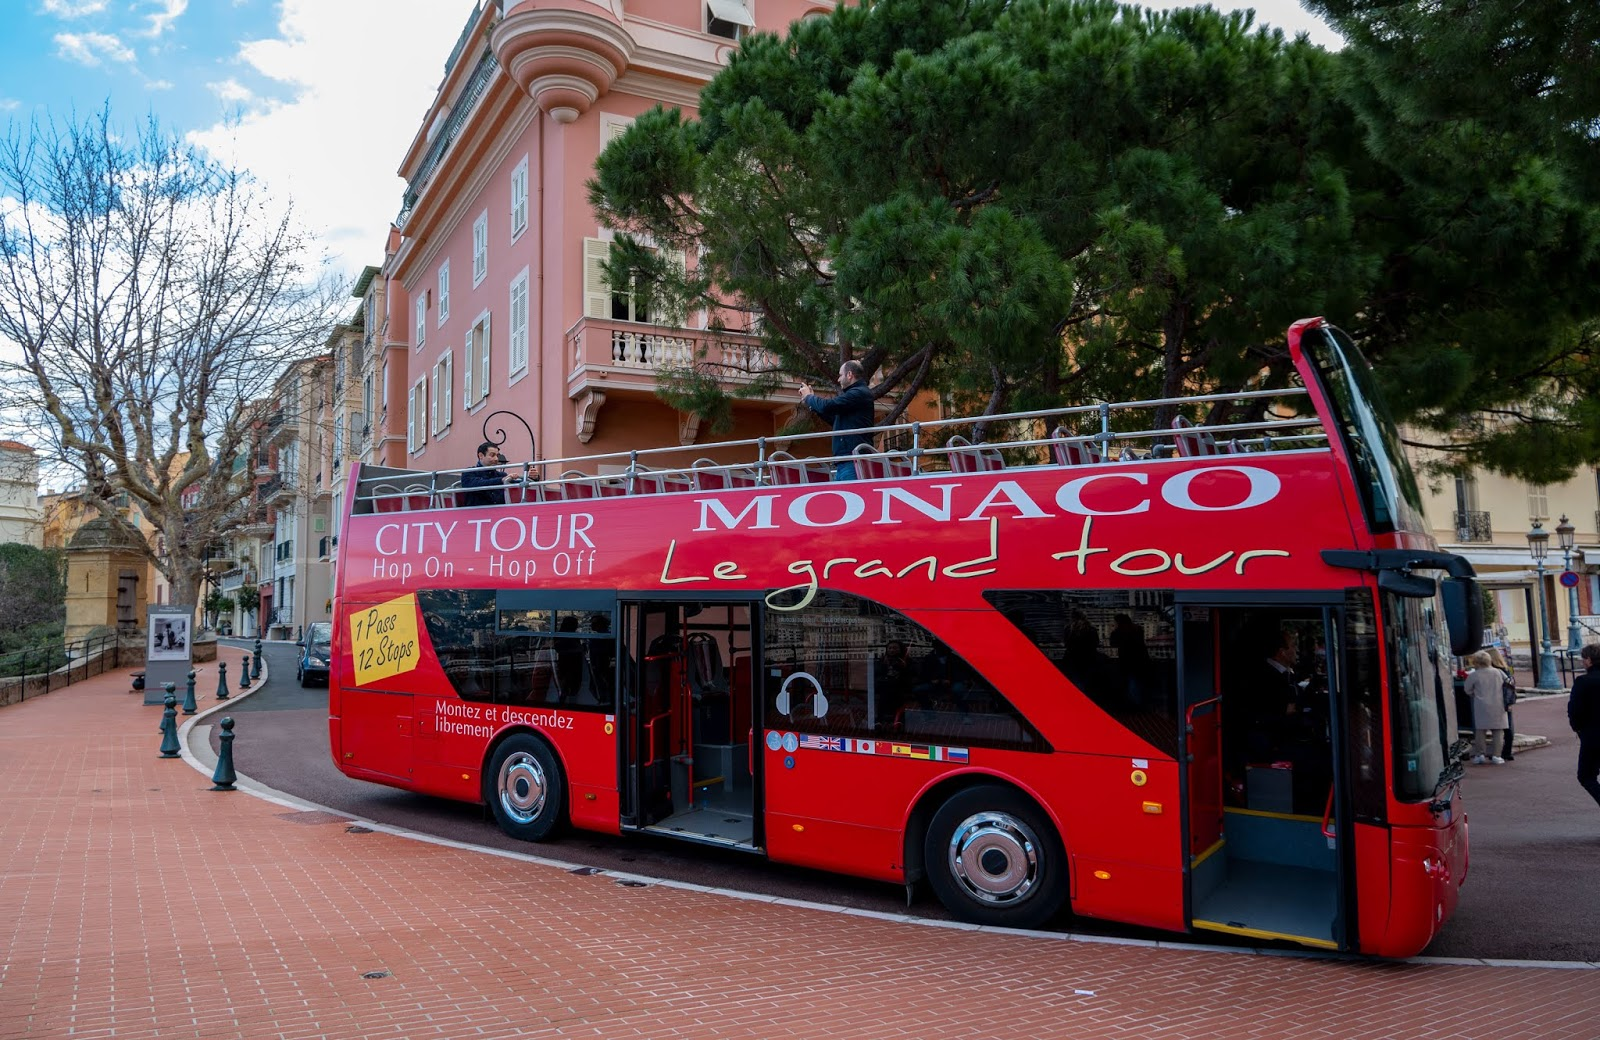 Monaco Le Grand Tour hop-on hop-off bus parked in Monaco City